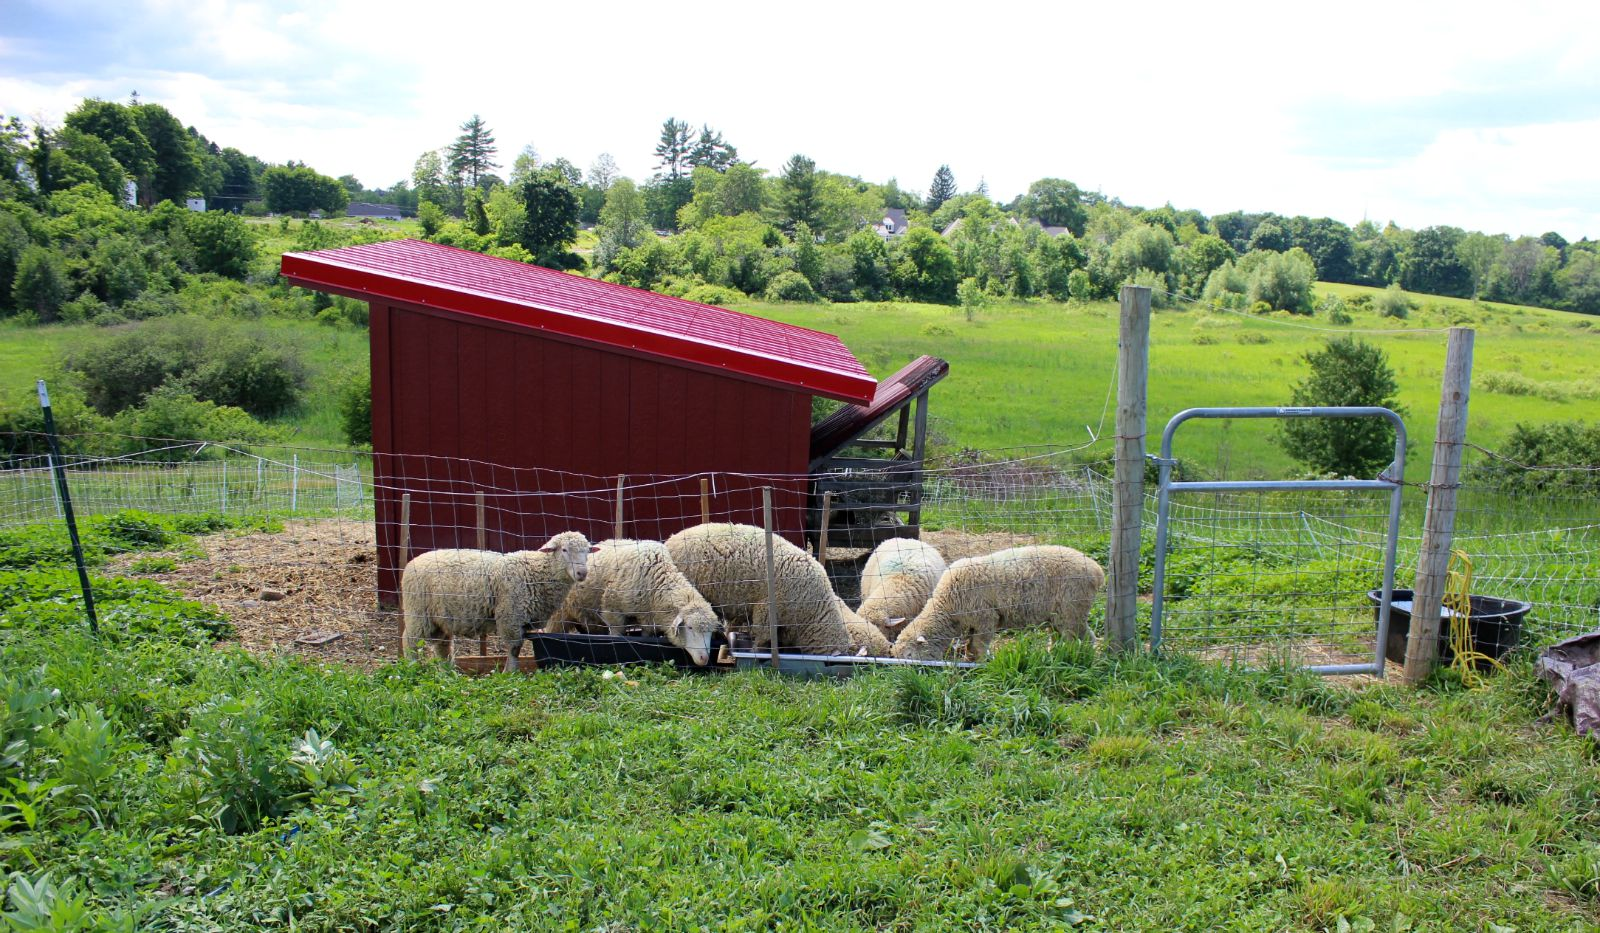 6 Lambs eating out of trough.